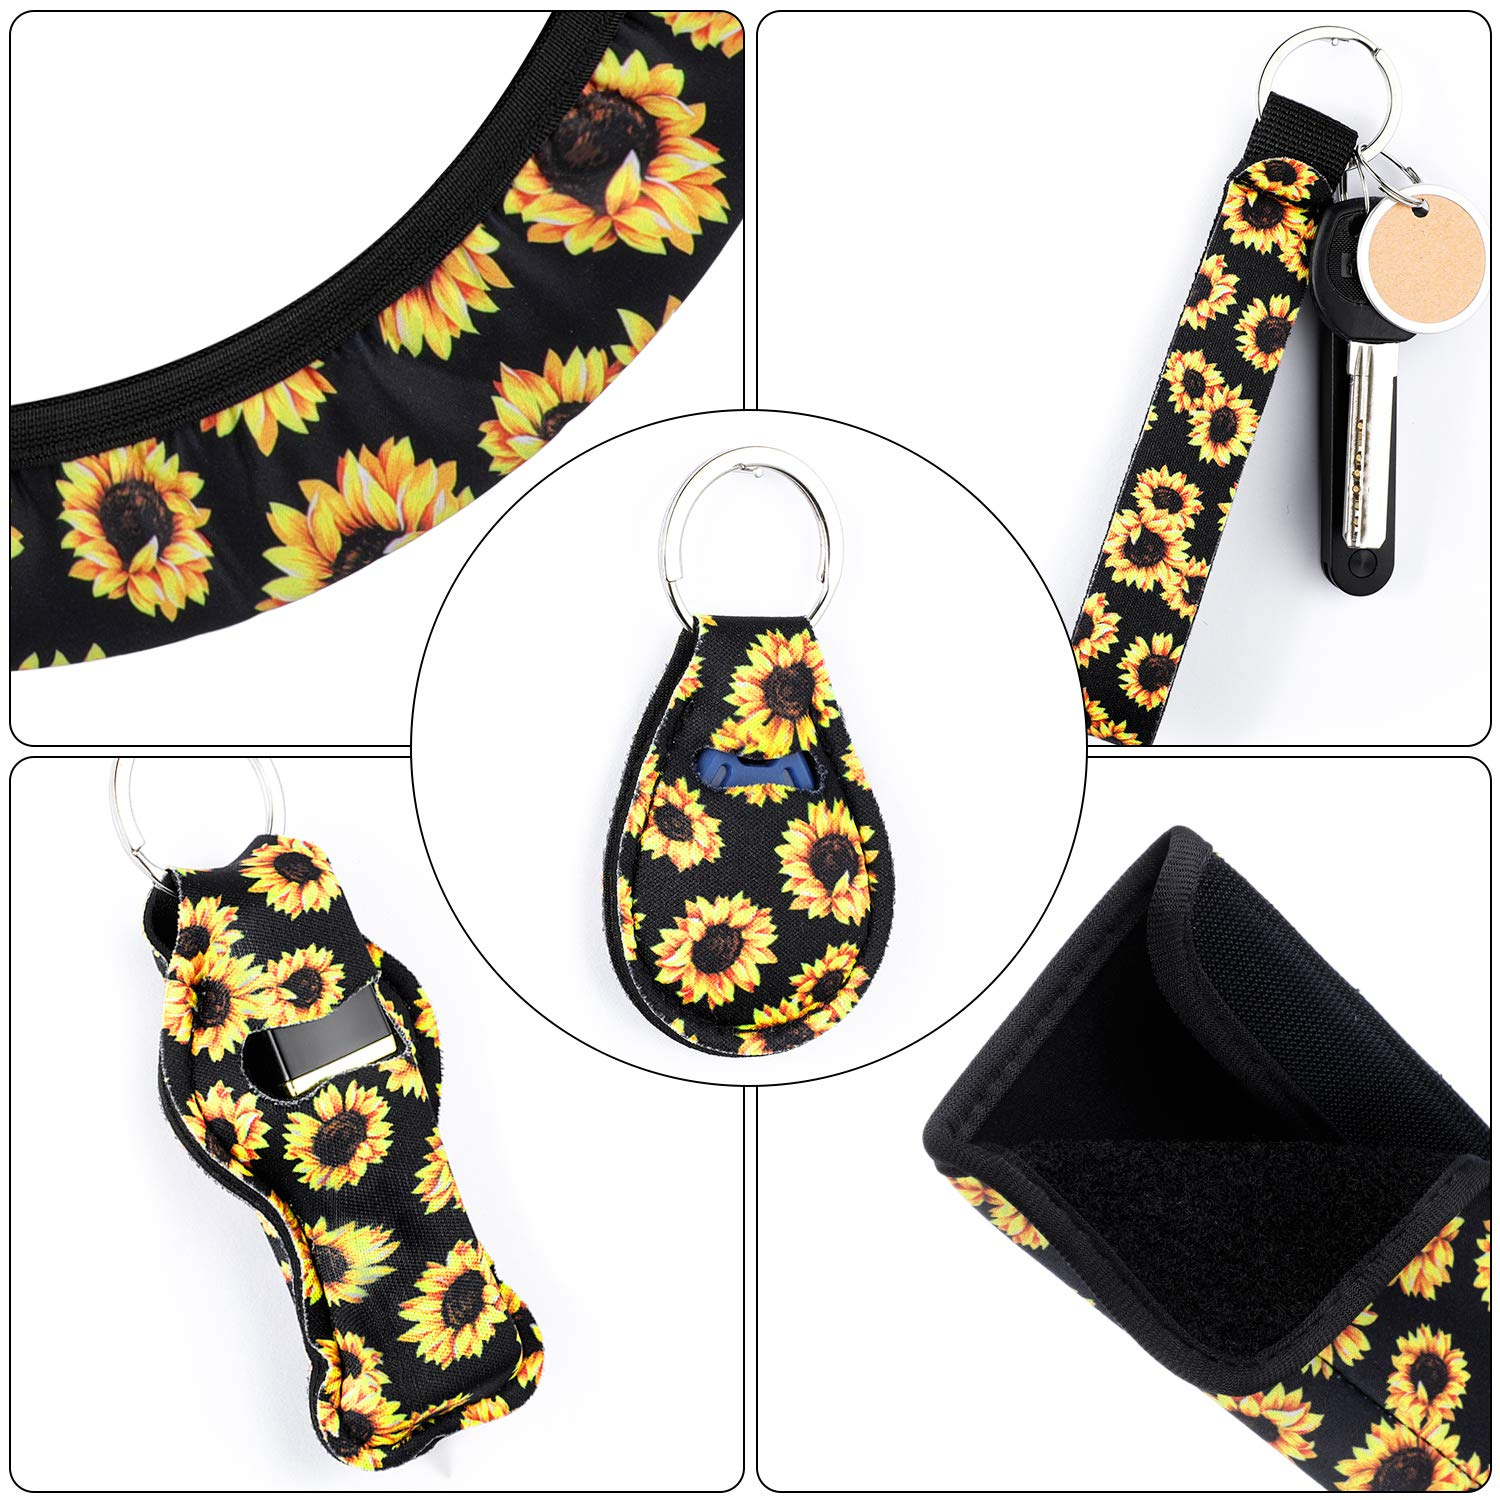 Cute Sunflowers Keyring Car Vent Decorations and Seat Belt Shoulder Pads 10 Pieces Sunflower Car Accessories Set Include Sunflower Steering Wheel Cover